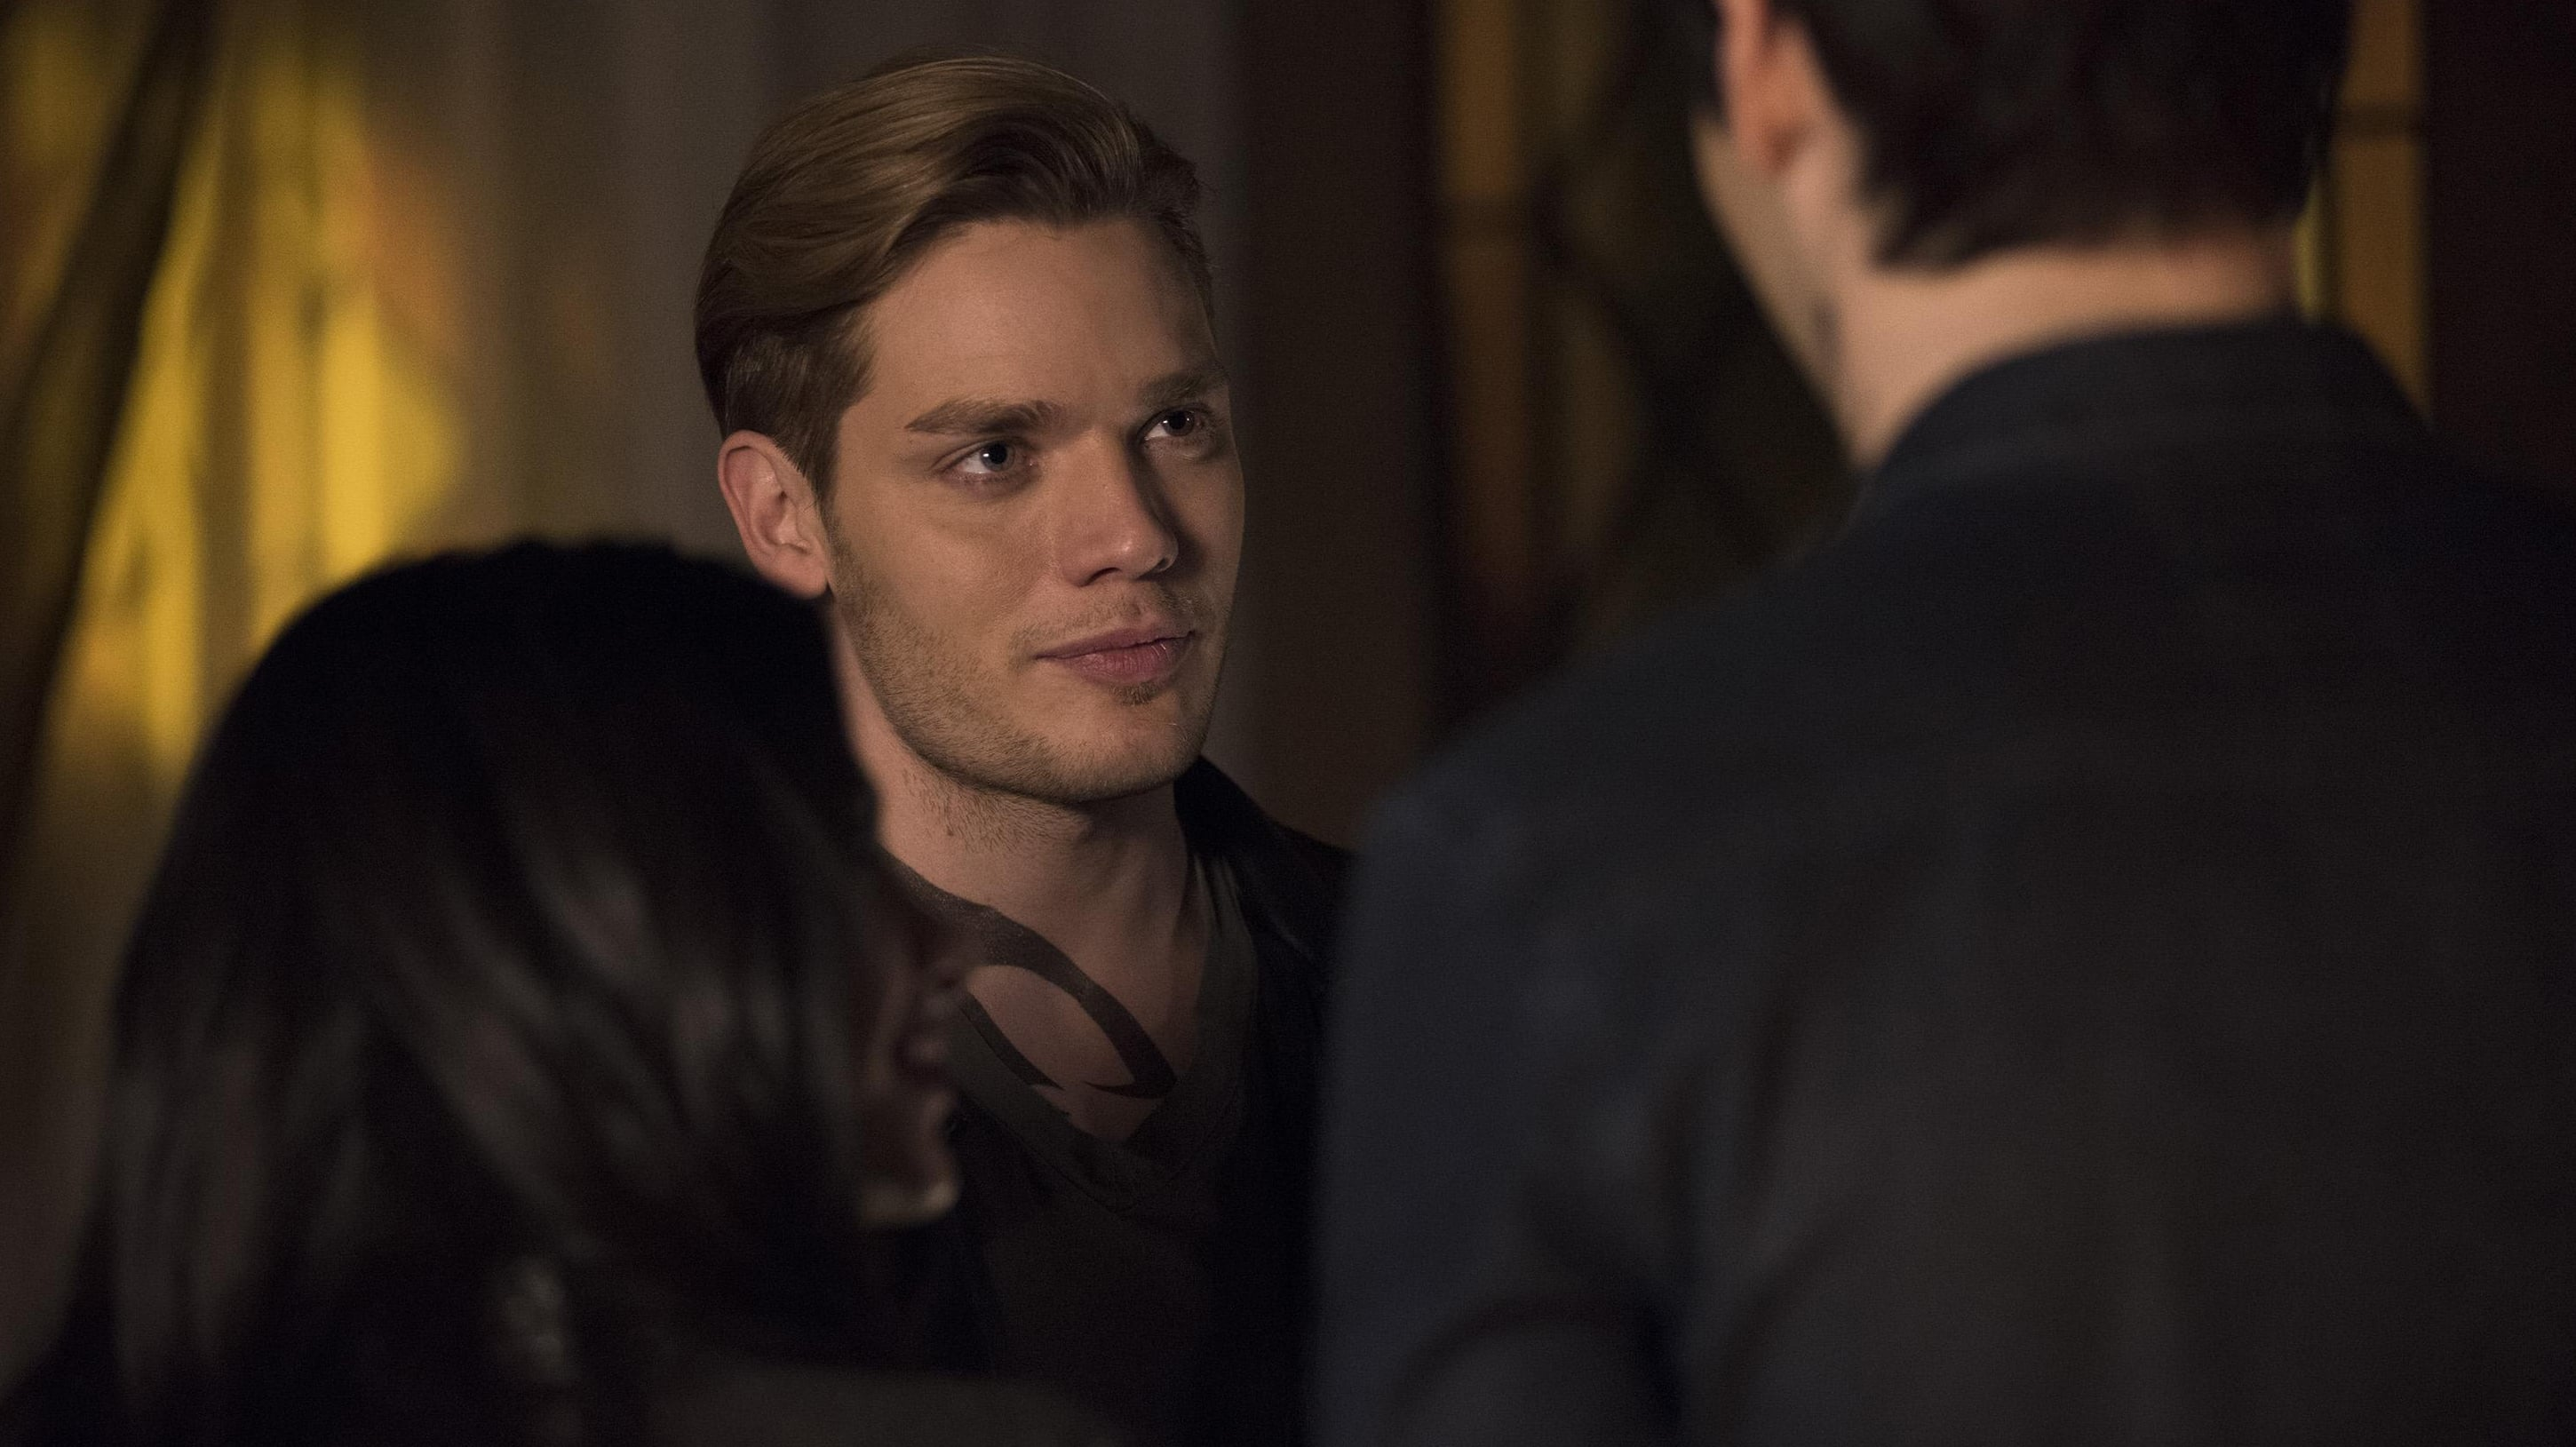 Shadowhunters - Season 2 Episode 13 : Those of Demon Blood